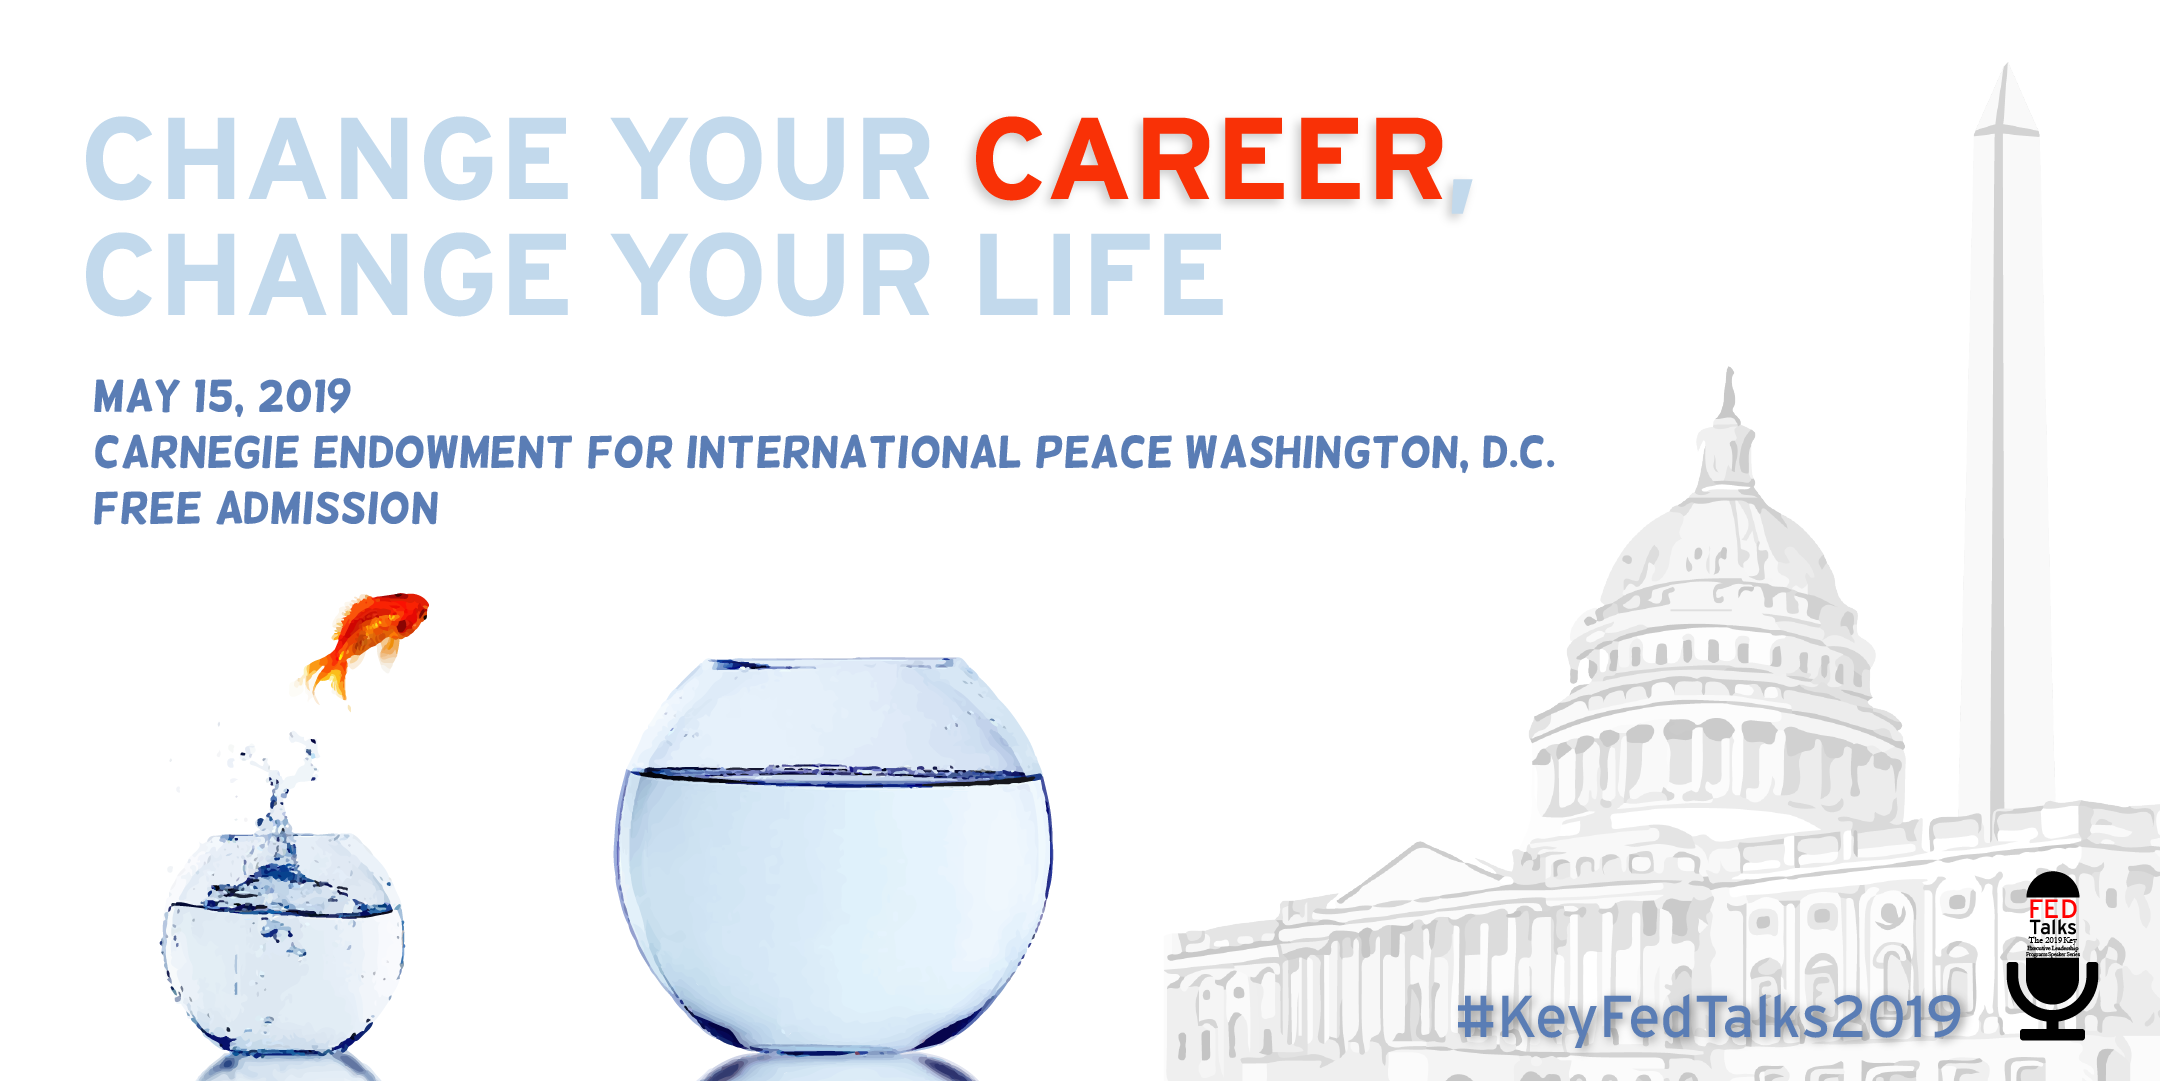 May 15 2019 FEDTalks, Change Your Career, Change Your Life. Free admission at Carnegie Endowment for International Peace.